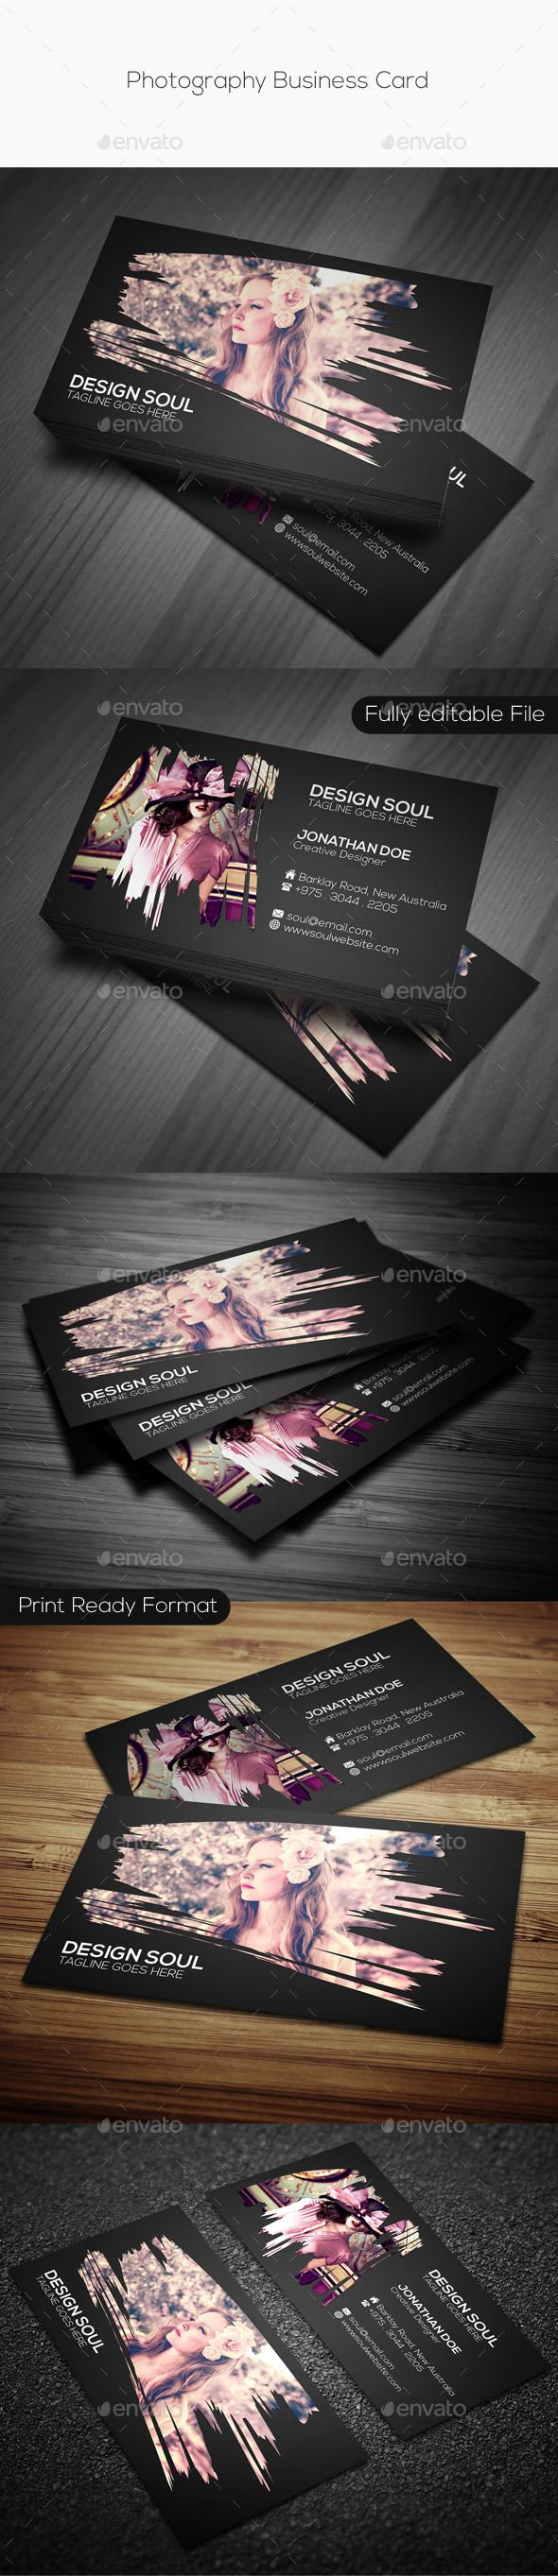 Business infographic photography business card template design business infographic data visualisation reheart Image collections